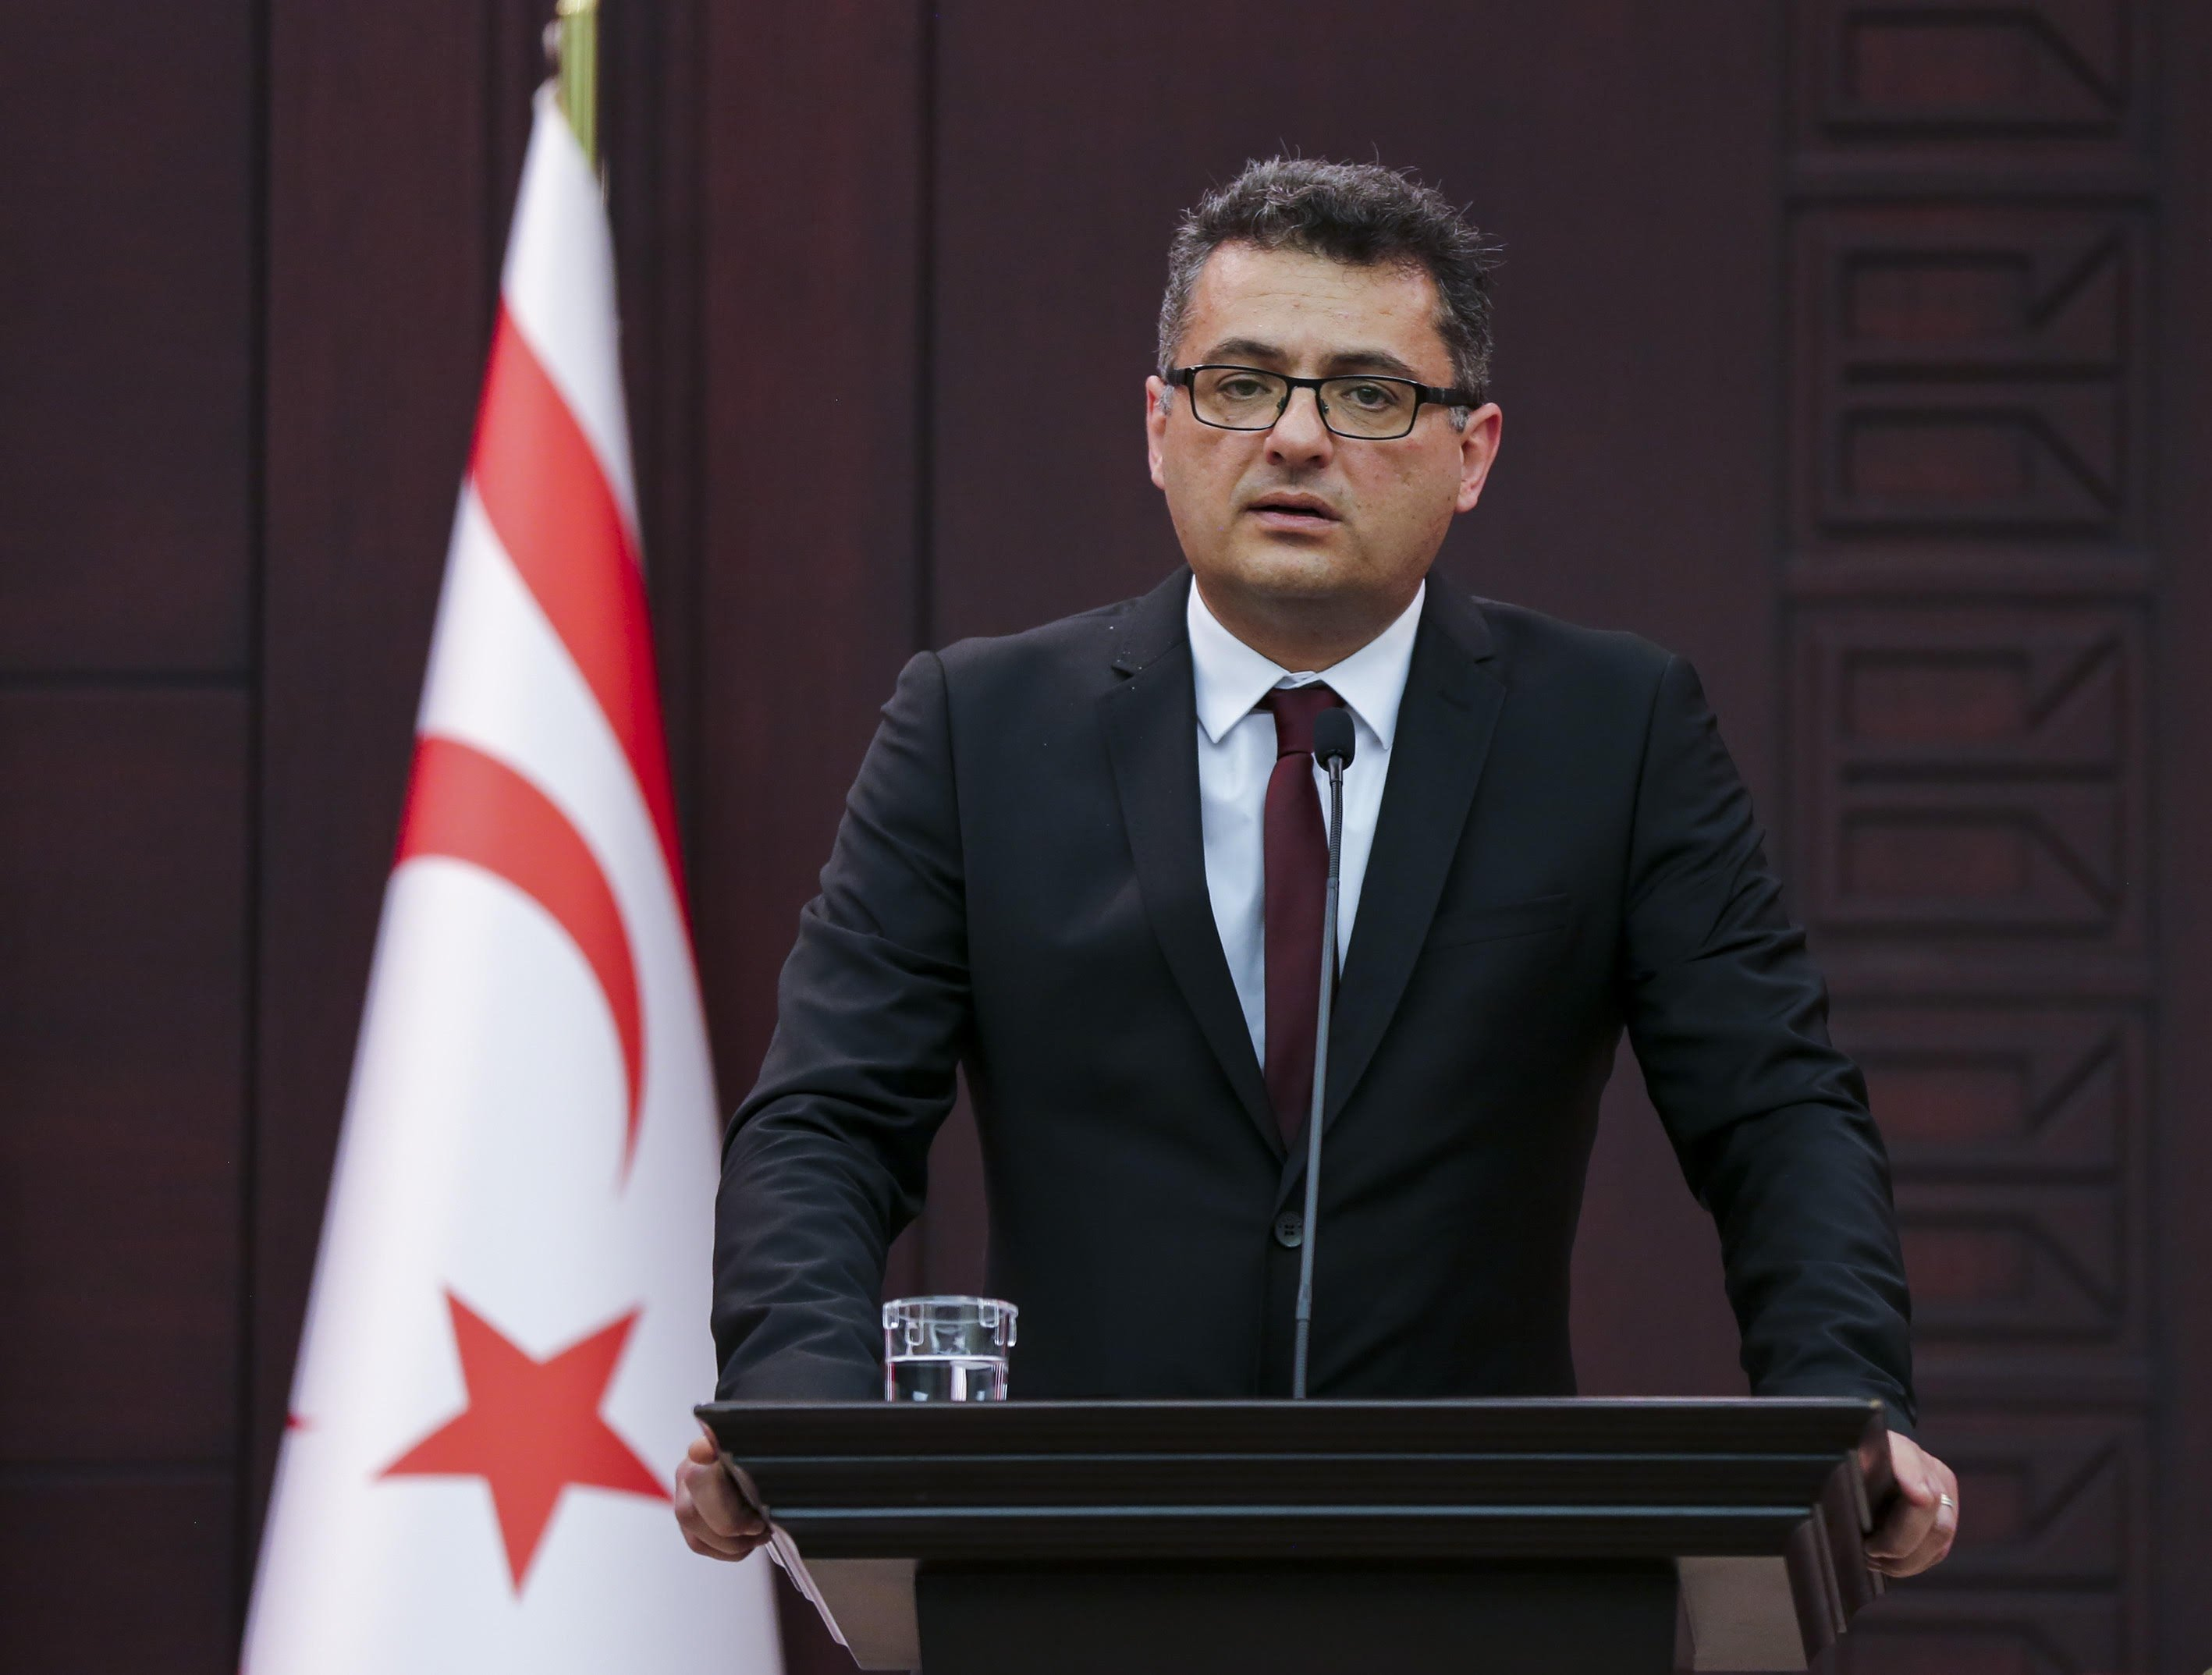 Former Prime Minister Tufan Erhürman runs in the presidential elections as the head of the Republican Turkish Party (CTP). (PHOTO BY ALI EKEYILMAZ)